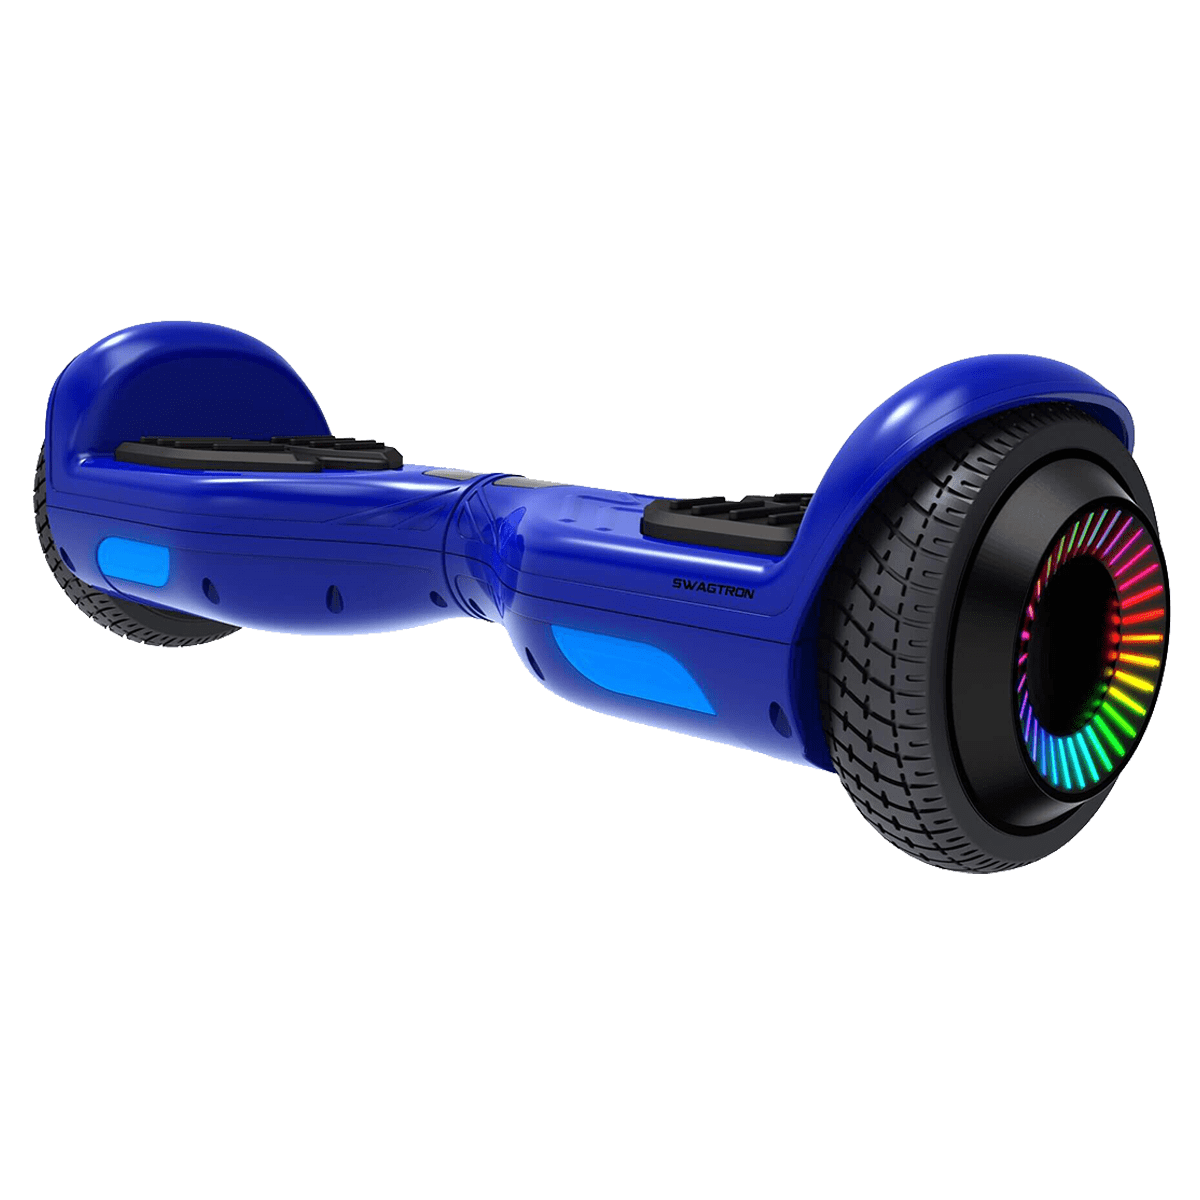 Swagtron SwagBoard Twist Hoverboard (LED Wheels, T881-Remix, Blue)